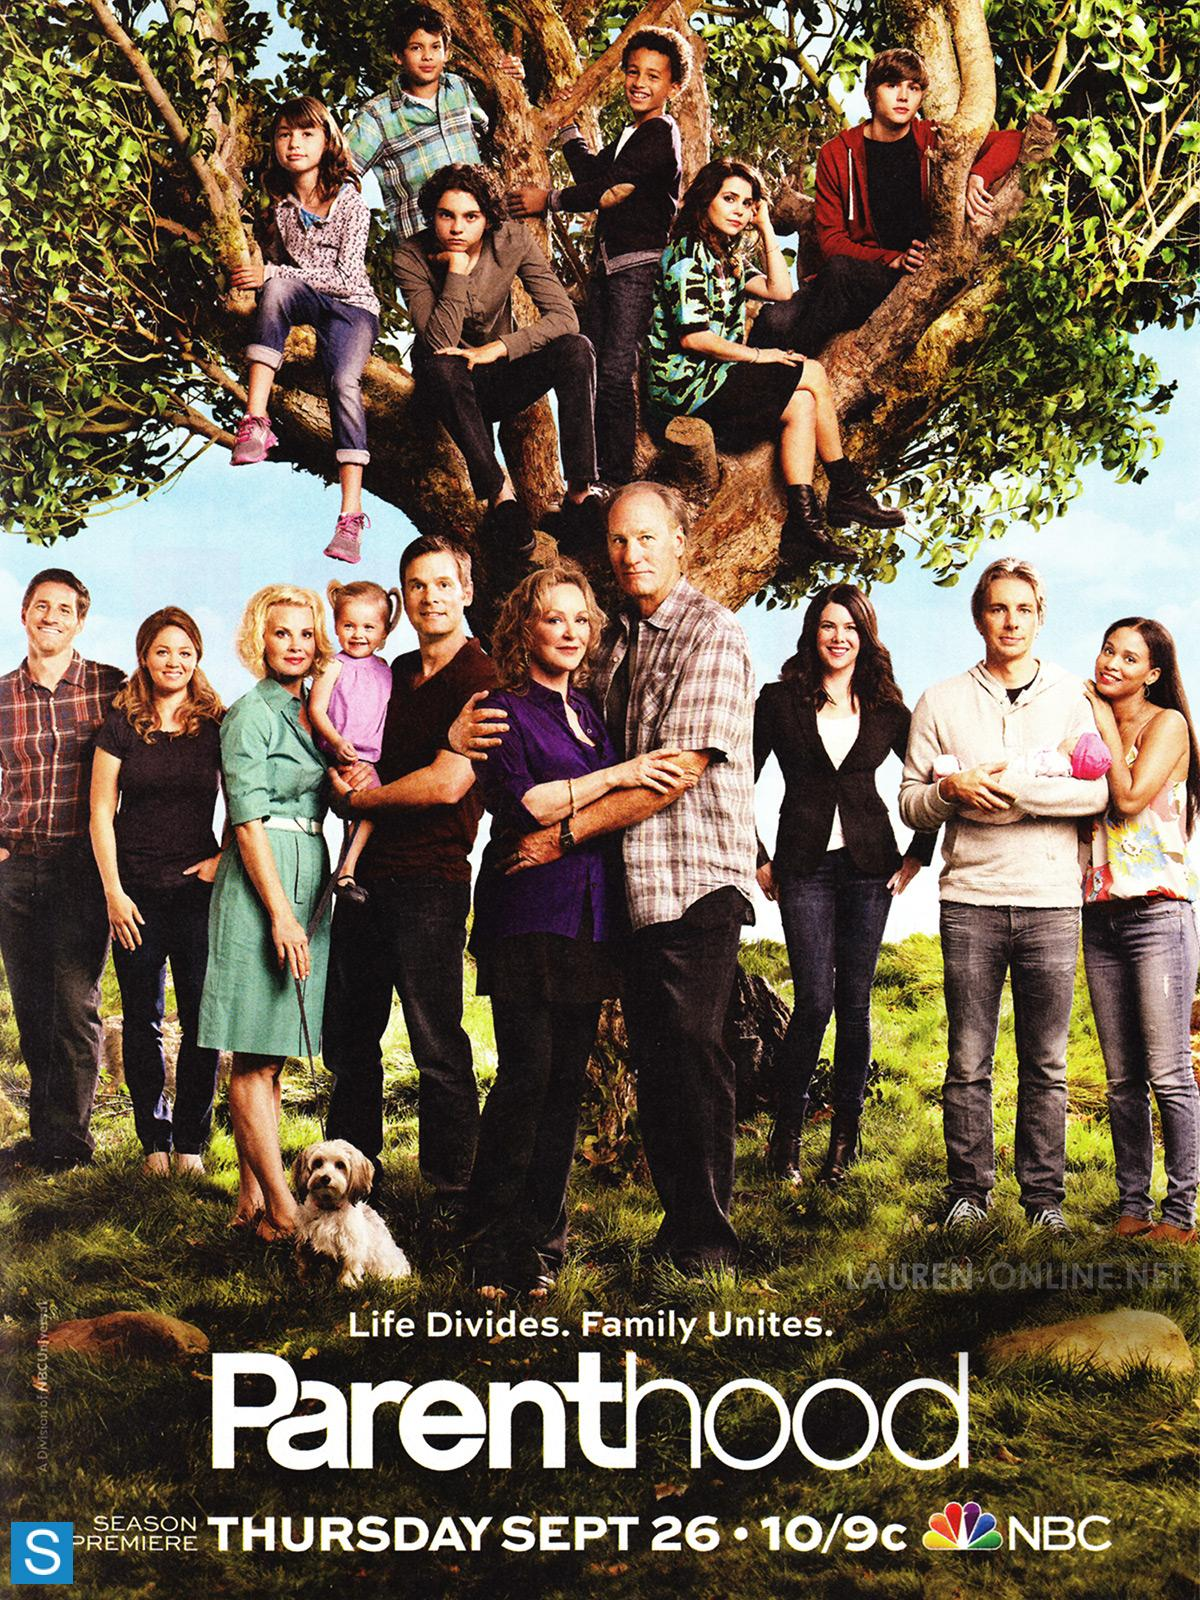 couchtimejill.files.wordpress.com_2013_09_parenthood-season-5-promotional-poster_full